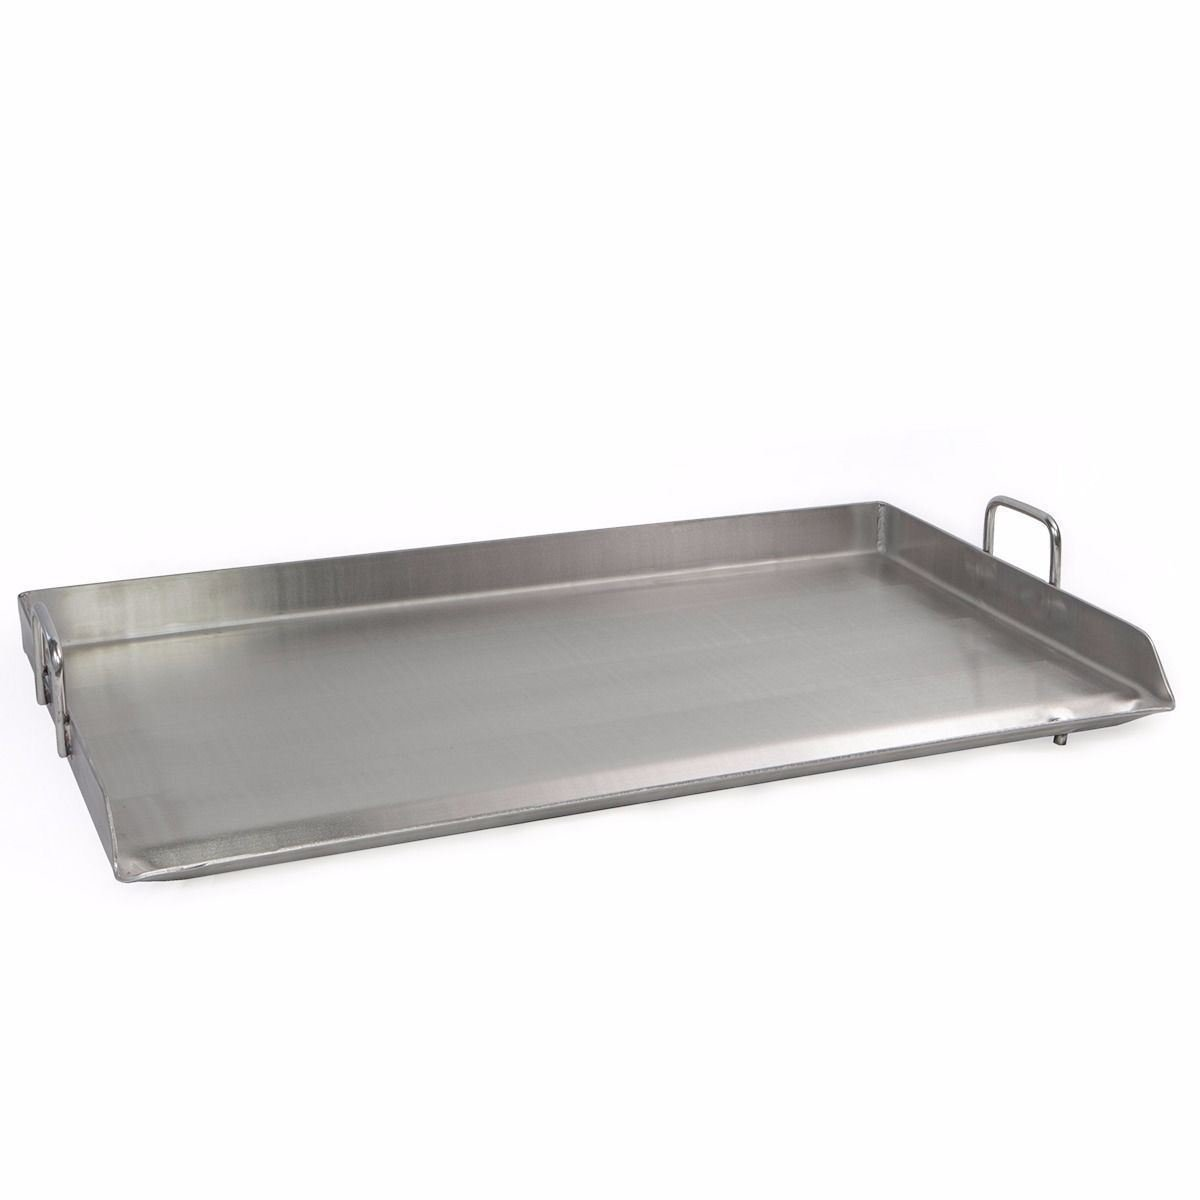 New 32x17 Stainless Steel Comal Flat Top BBQ Cooking Griddle For double Stove